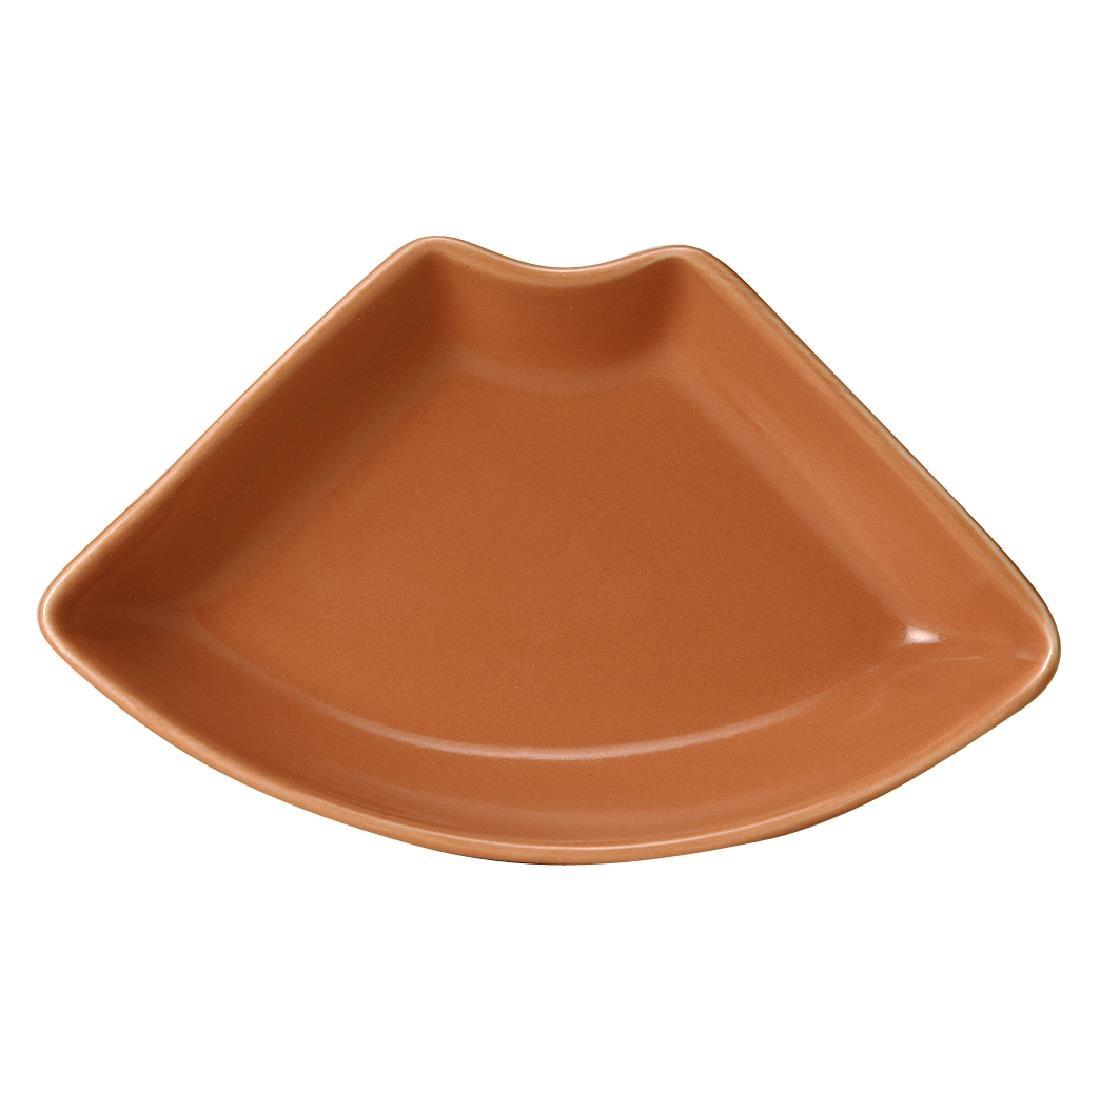 W019 - Terracotta Solar Dish (Box 12)